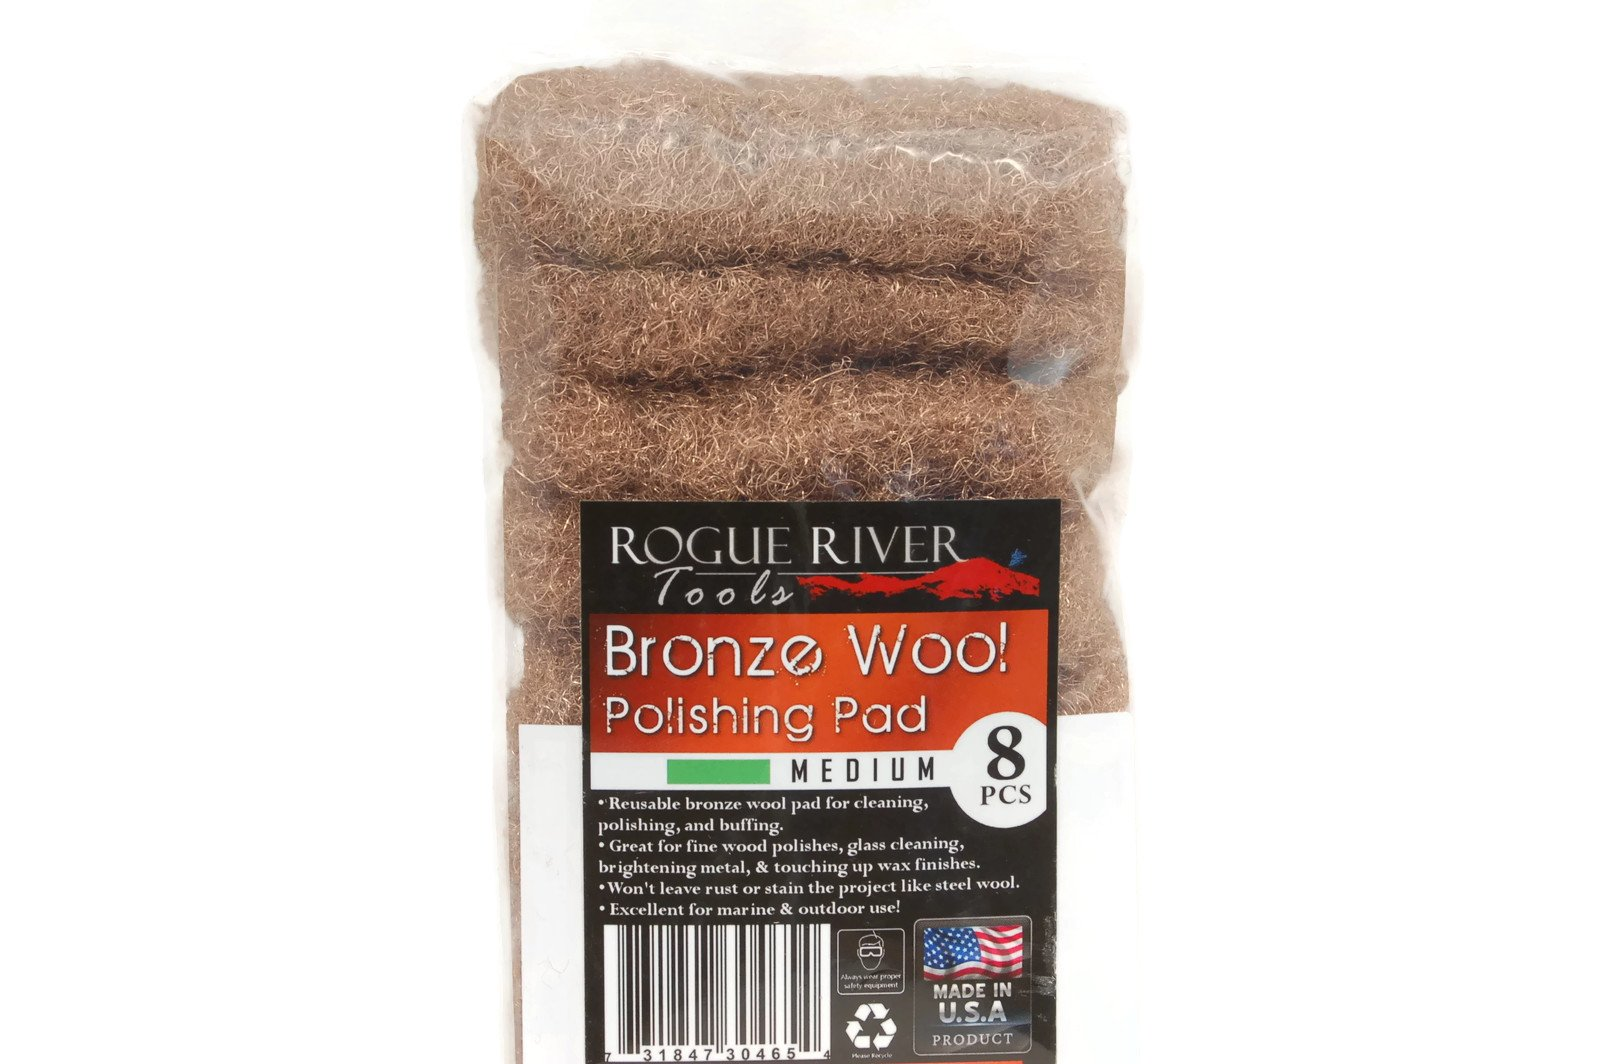 Rogue River Tools Bronze Wool Pads - Medium (8) by Rogue River Tools